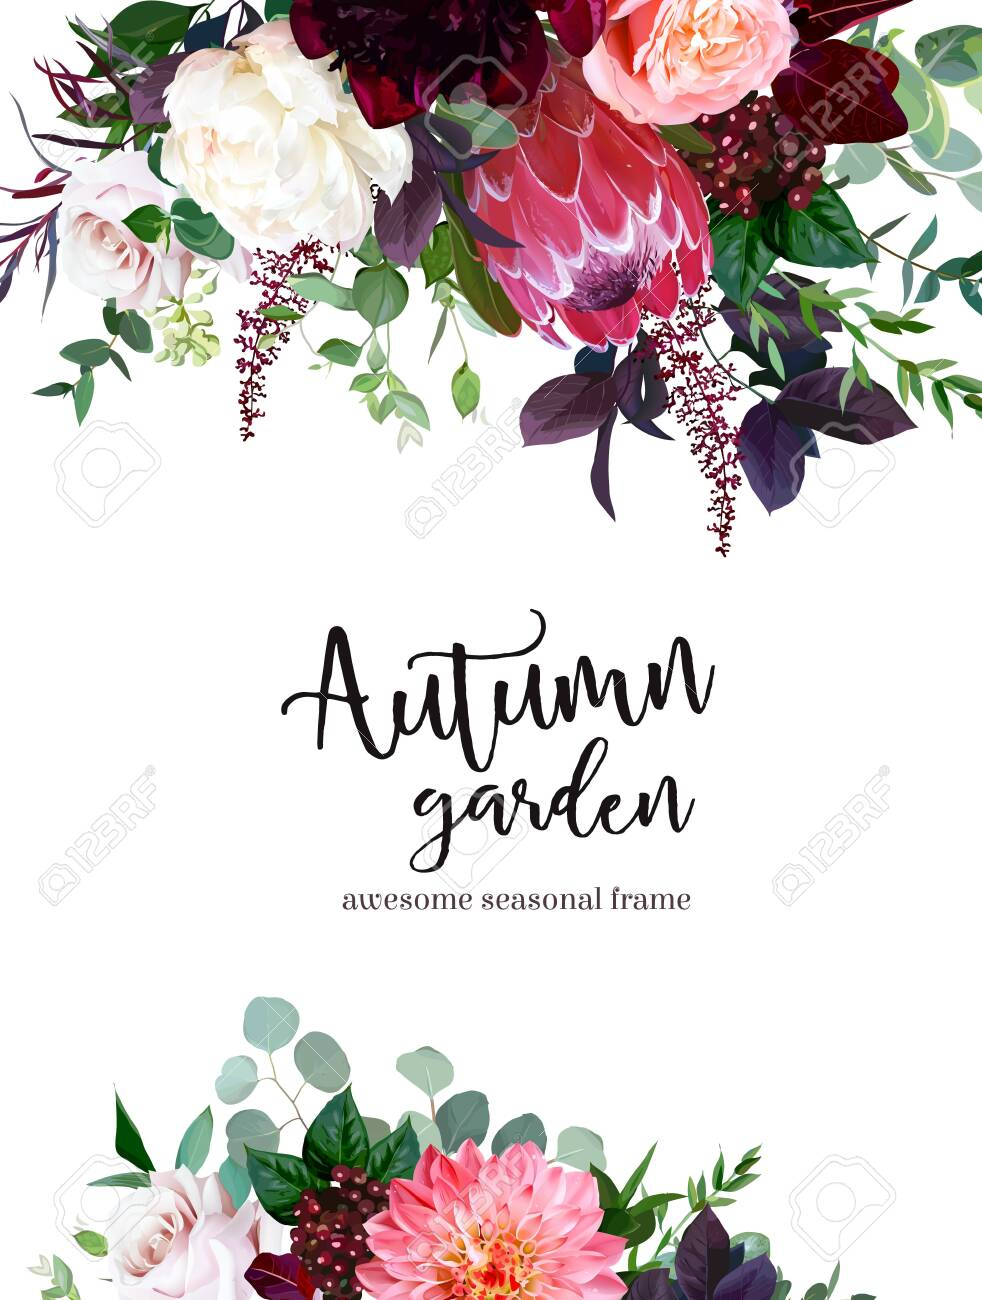 Luxury fall flowers vector design frame. Protea flower, peachy coral garden rose, burgundy red peony, ranunculus, astilbe, greenery and berry. Autumn wedding bunch of flowers. Isolated and editable - 135074641